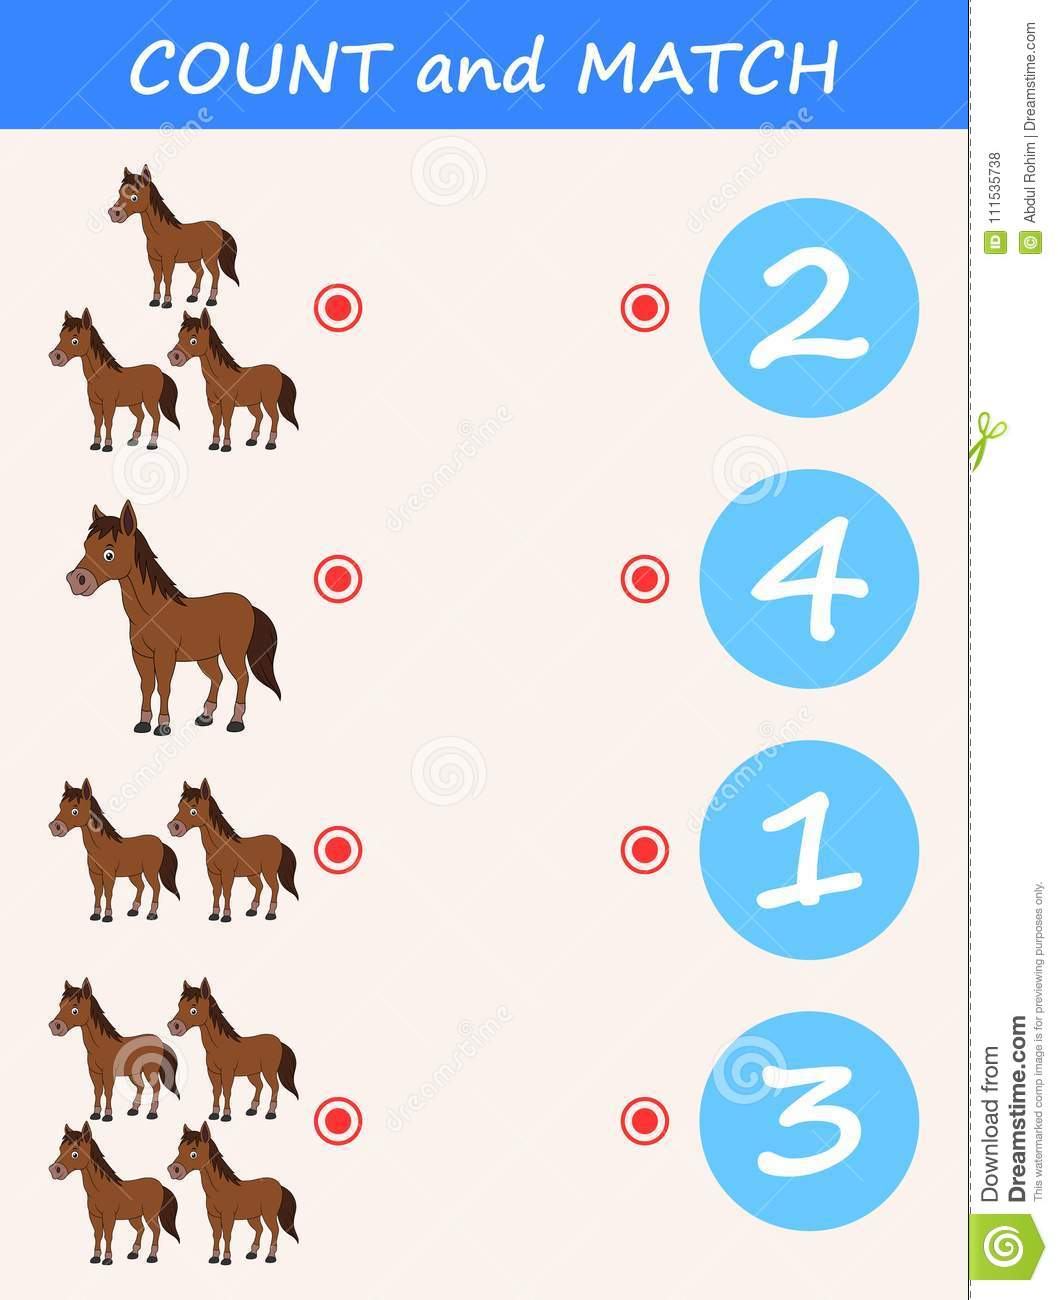 Count And Match Horse Cartoon Math Educational Game For